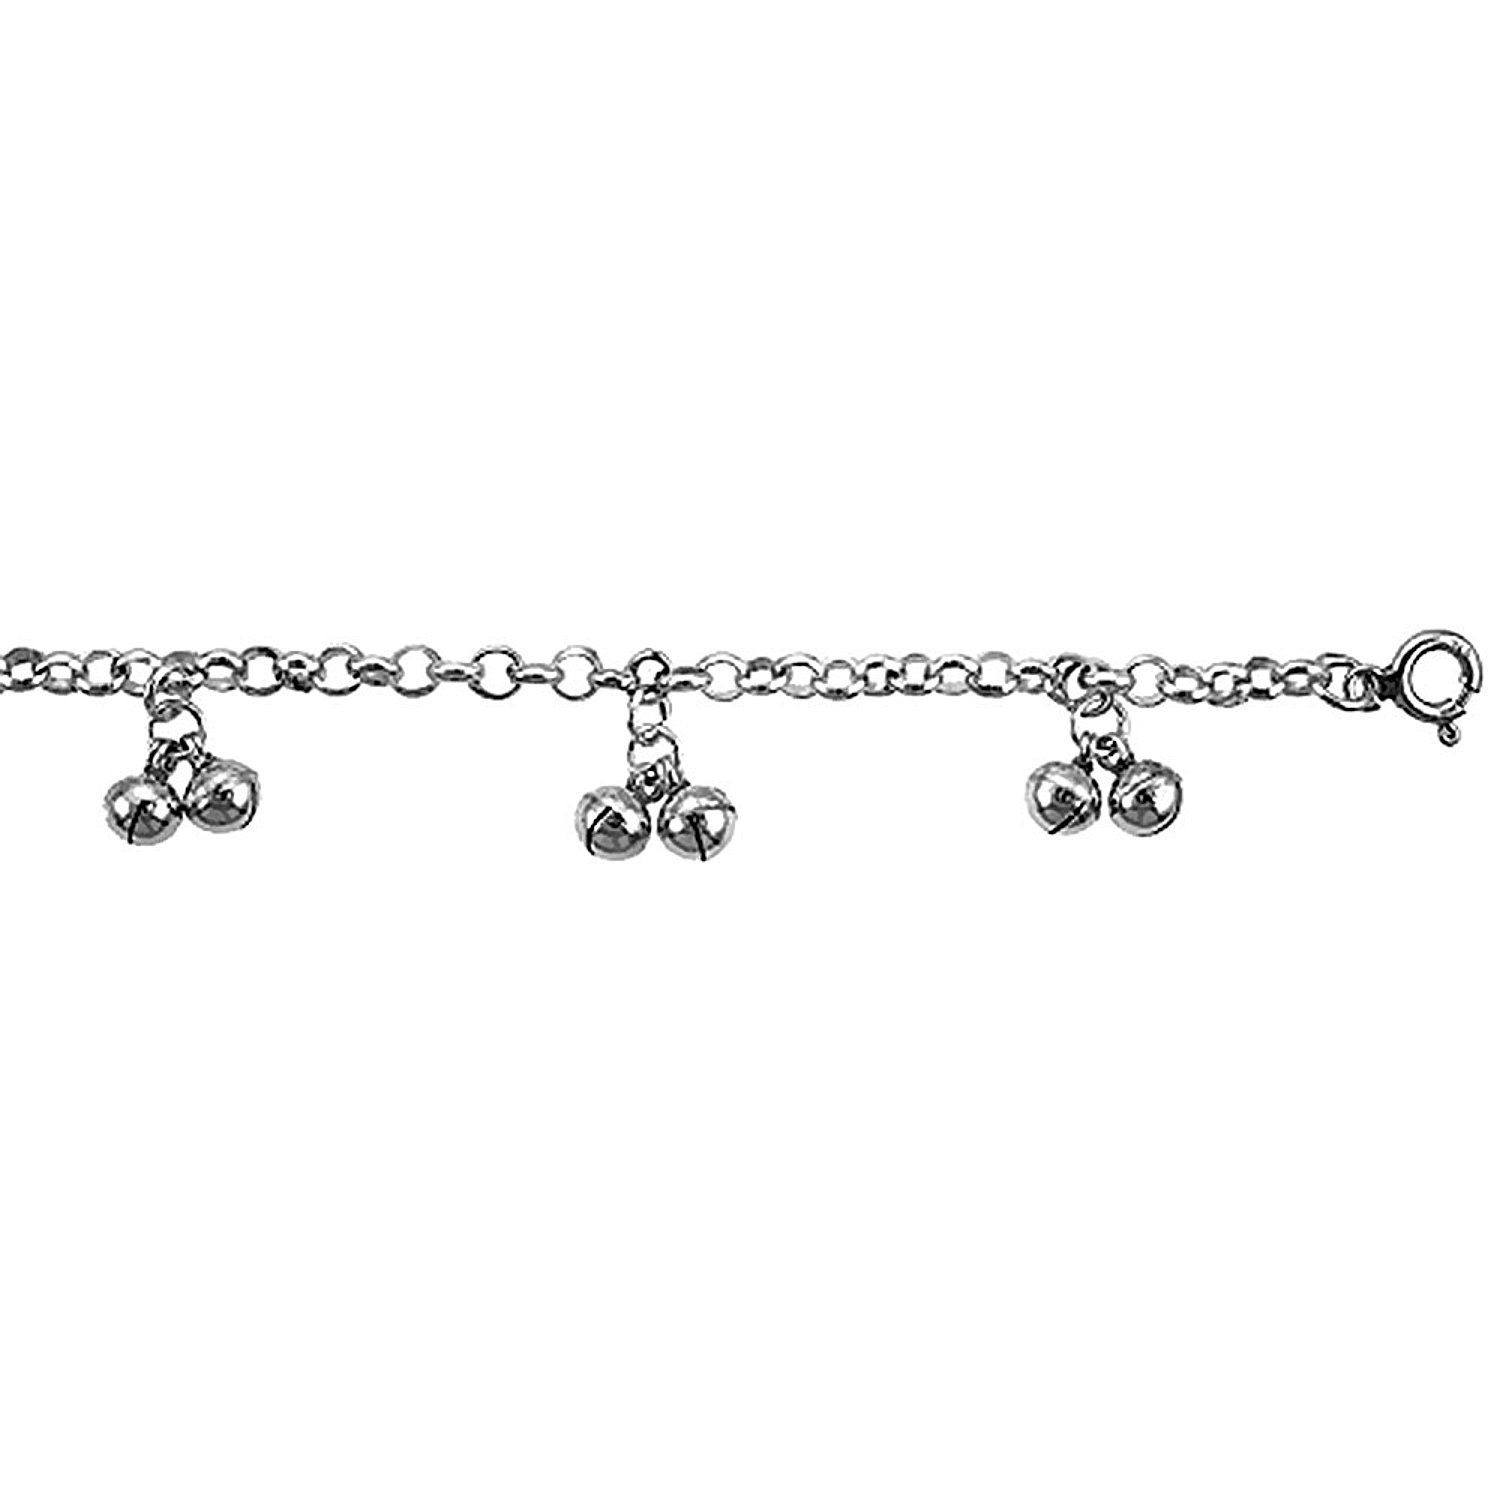 chain pair product supply precious silver real anklets simple bracelet ankle anklet bracelets